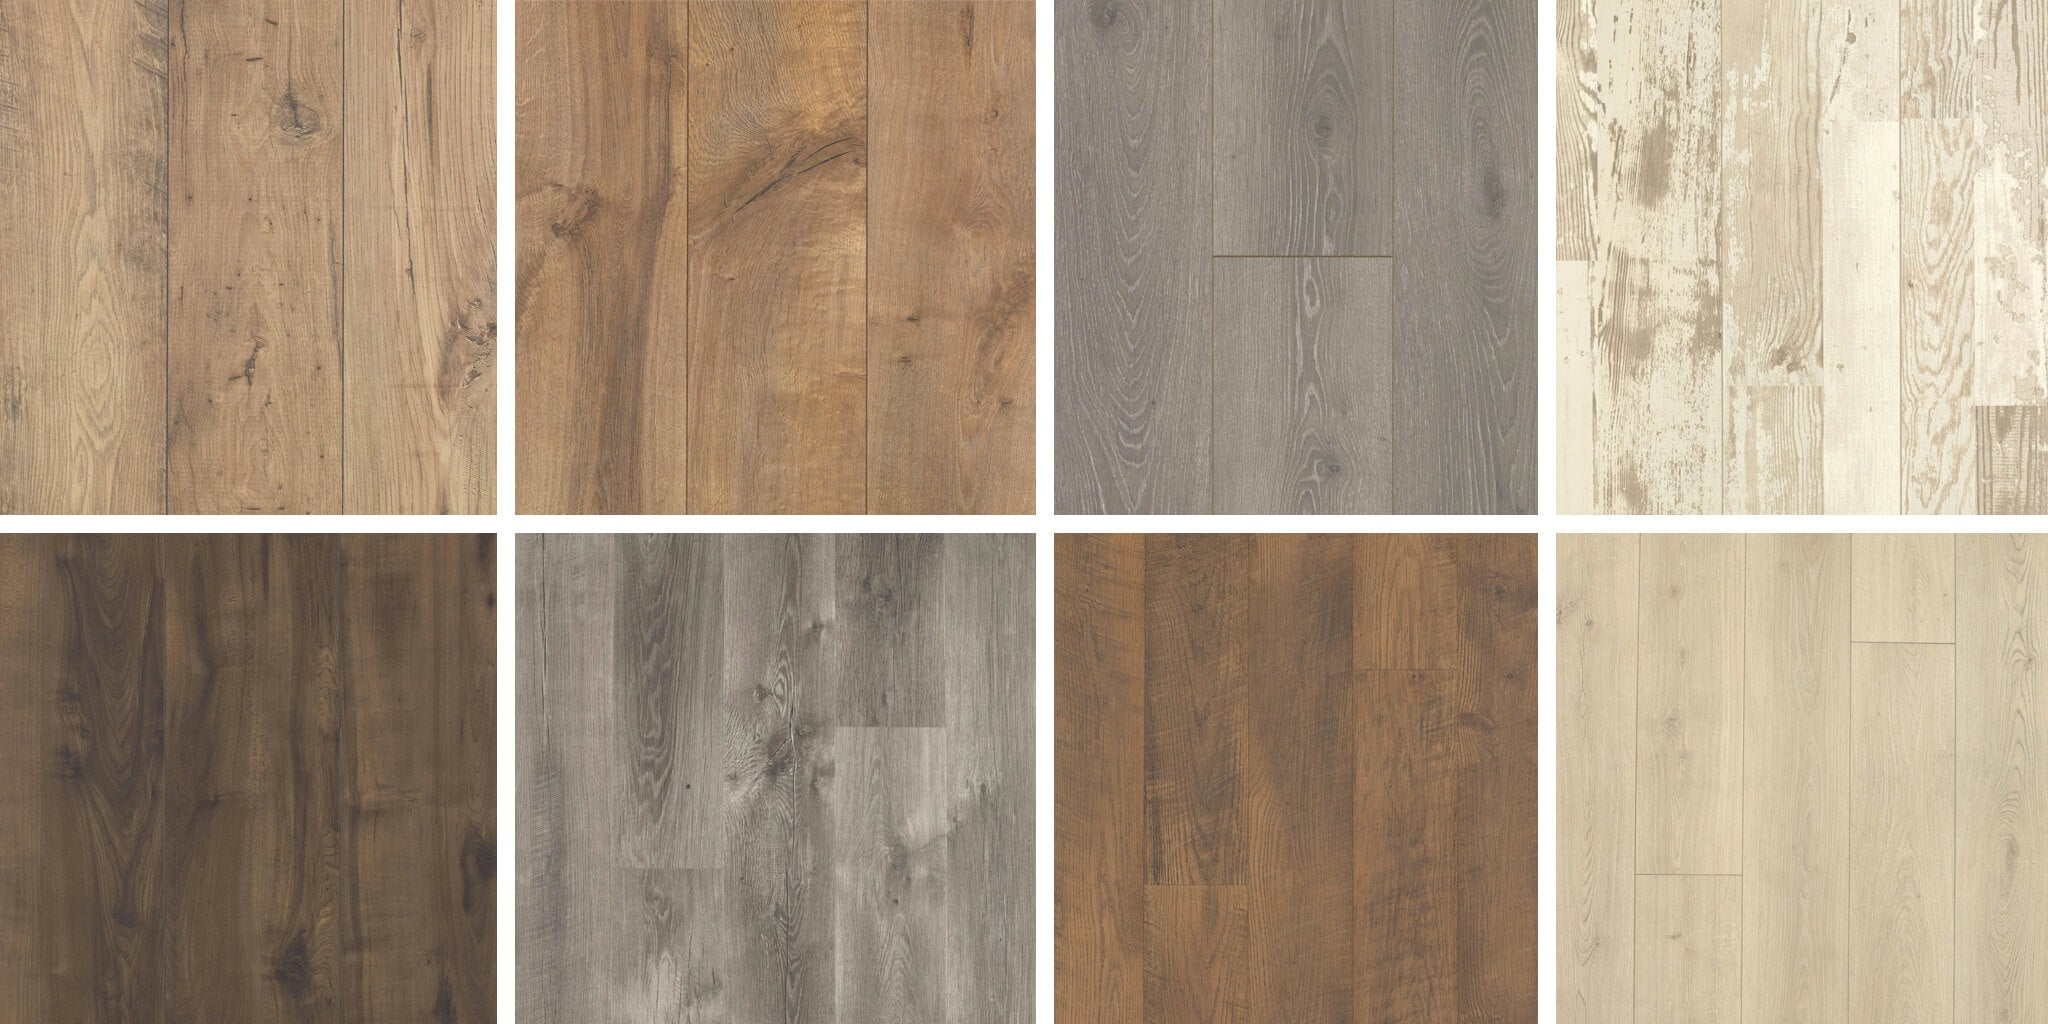 Laminate choices of Traditional, Transitional, Coastal, Farmhouse, Mediterranean, Bohemian, Modern, and Contemporary styles.